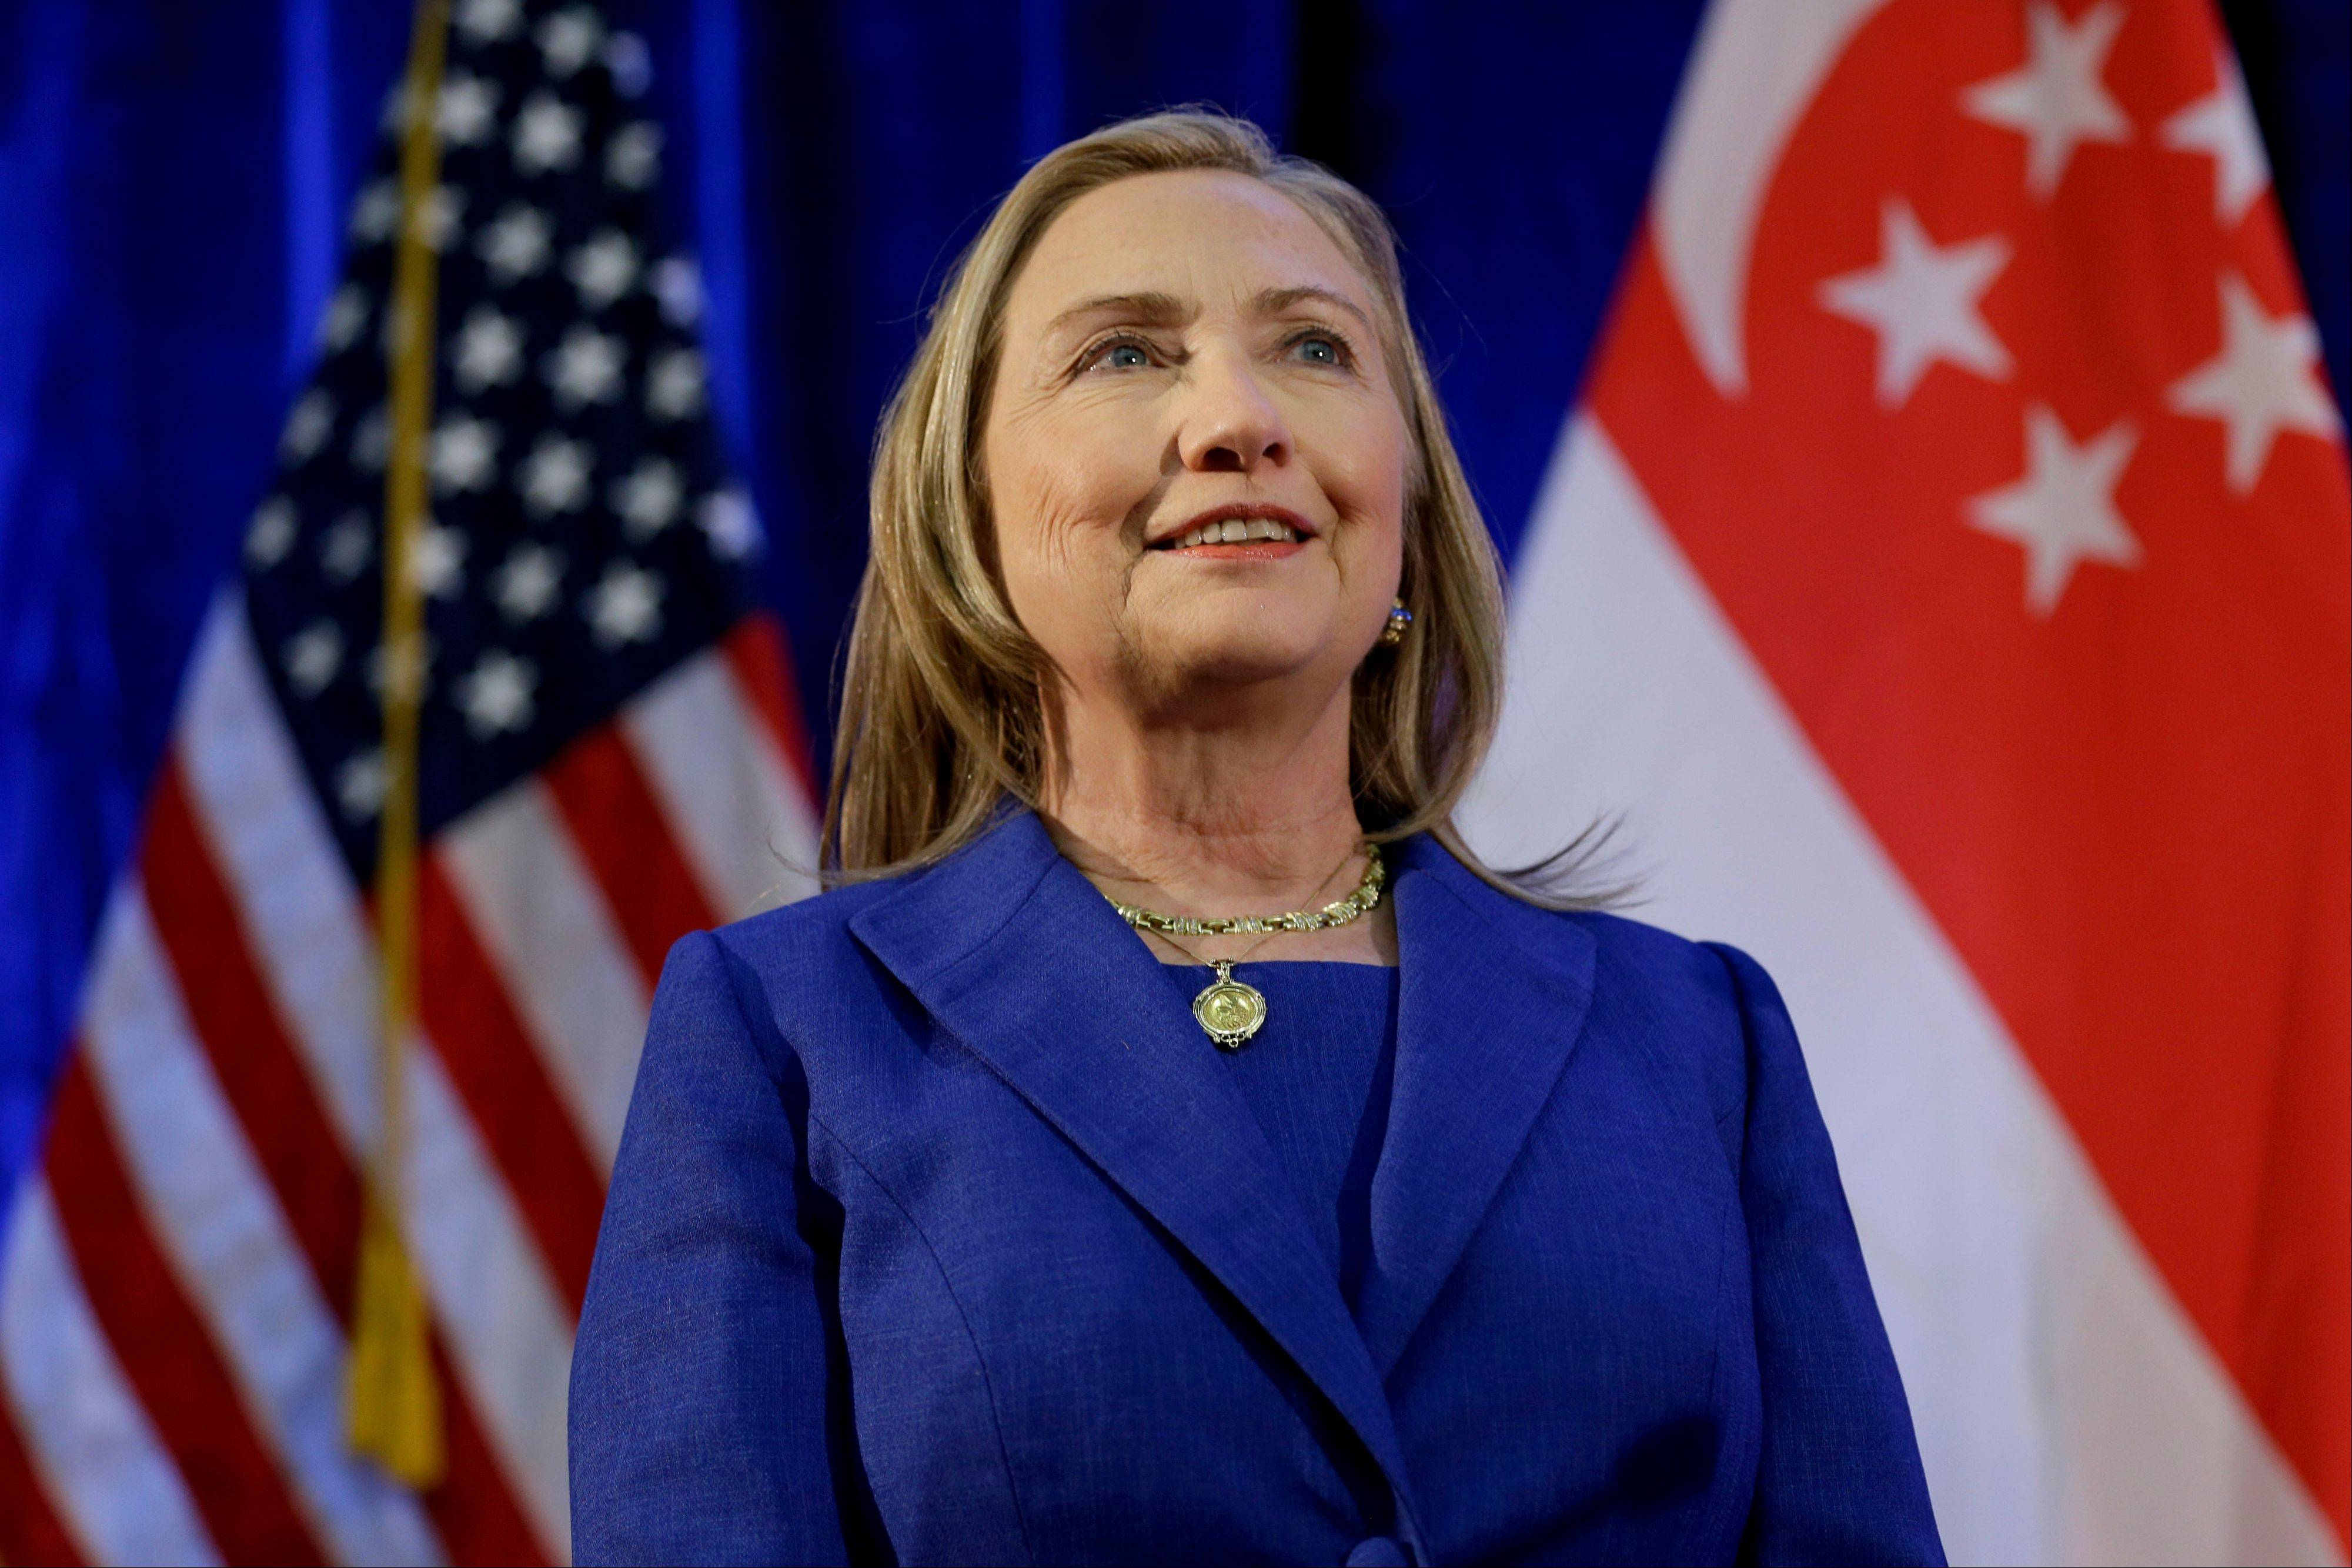 U.S. Secretary of State Hillary Rodham Clinton was dispatched to the Middle East Tuesday as the U.S. urgently seeks to contain the bloody conflict between Israel and Hamas.